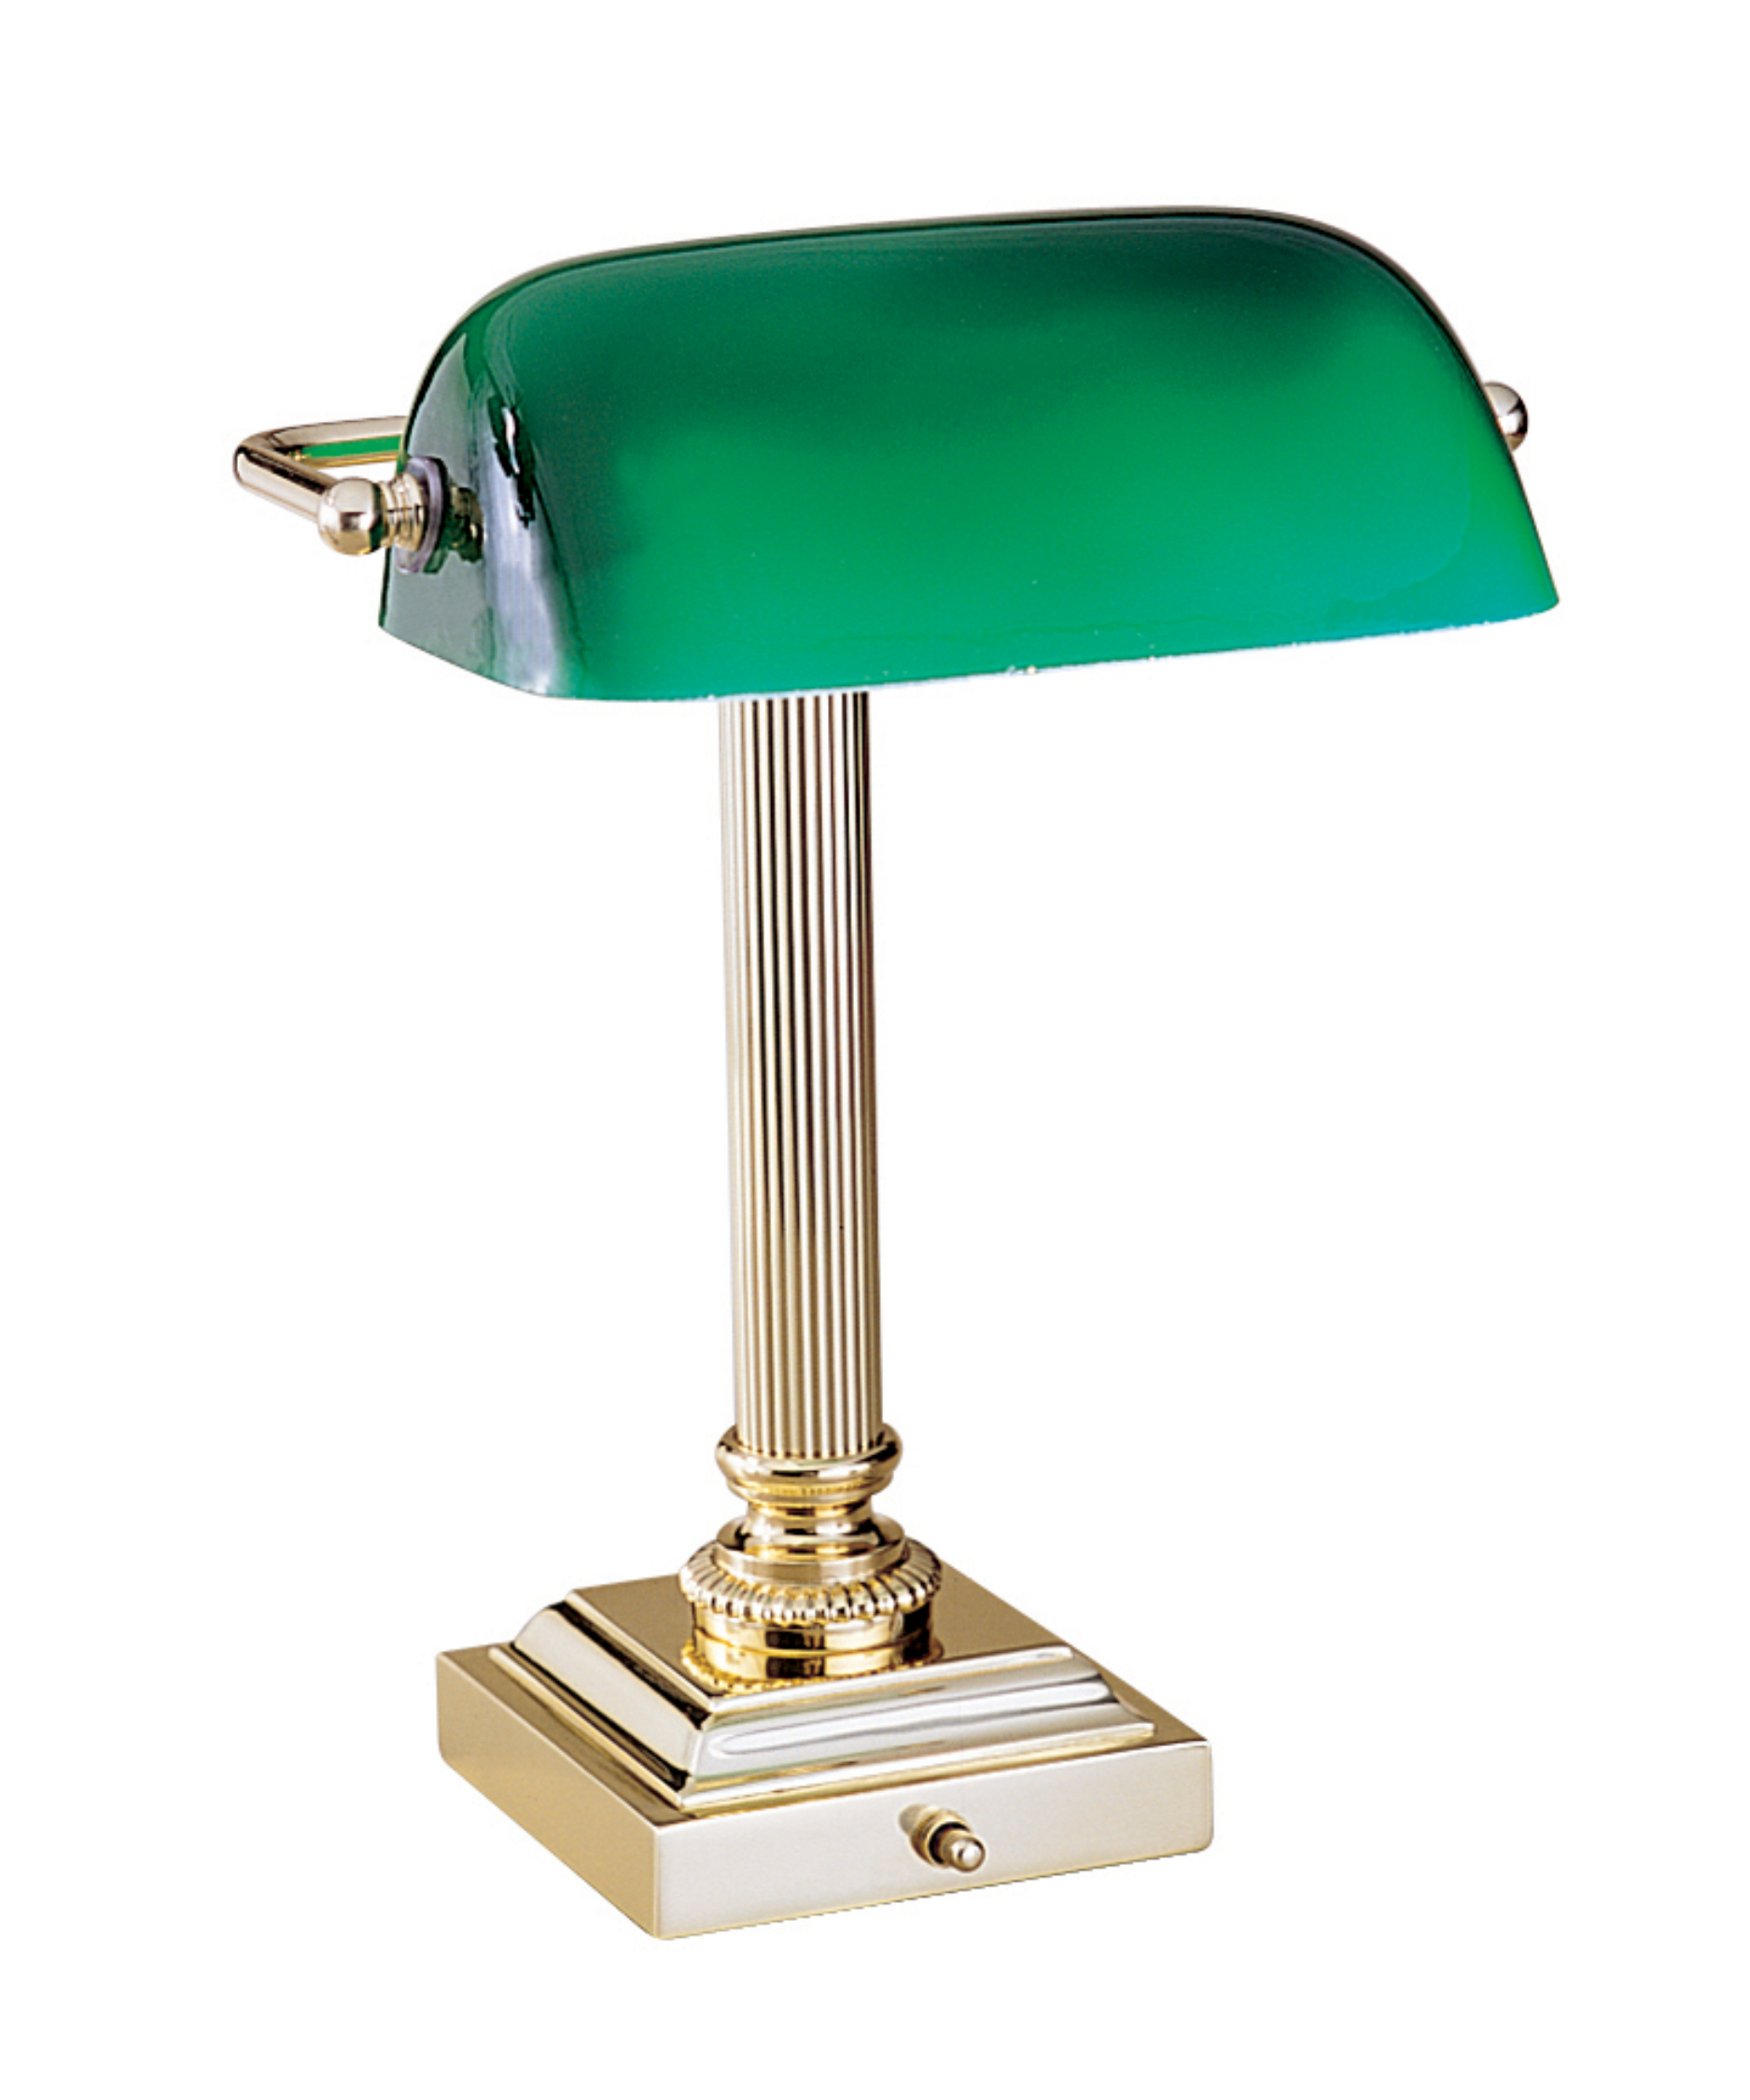 Green glass desk lamp - 10 secret ingredients to having an elegant ...